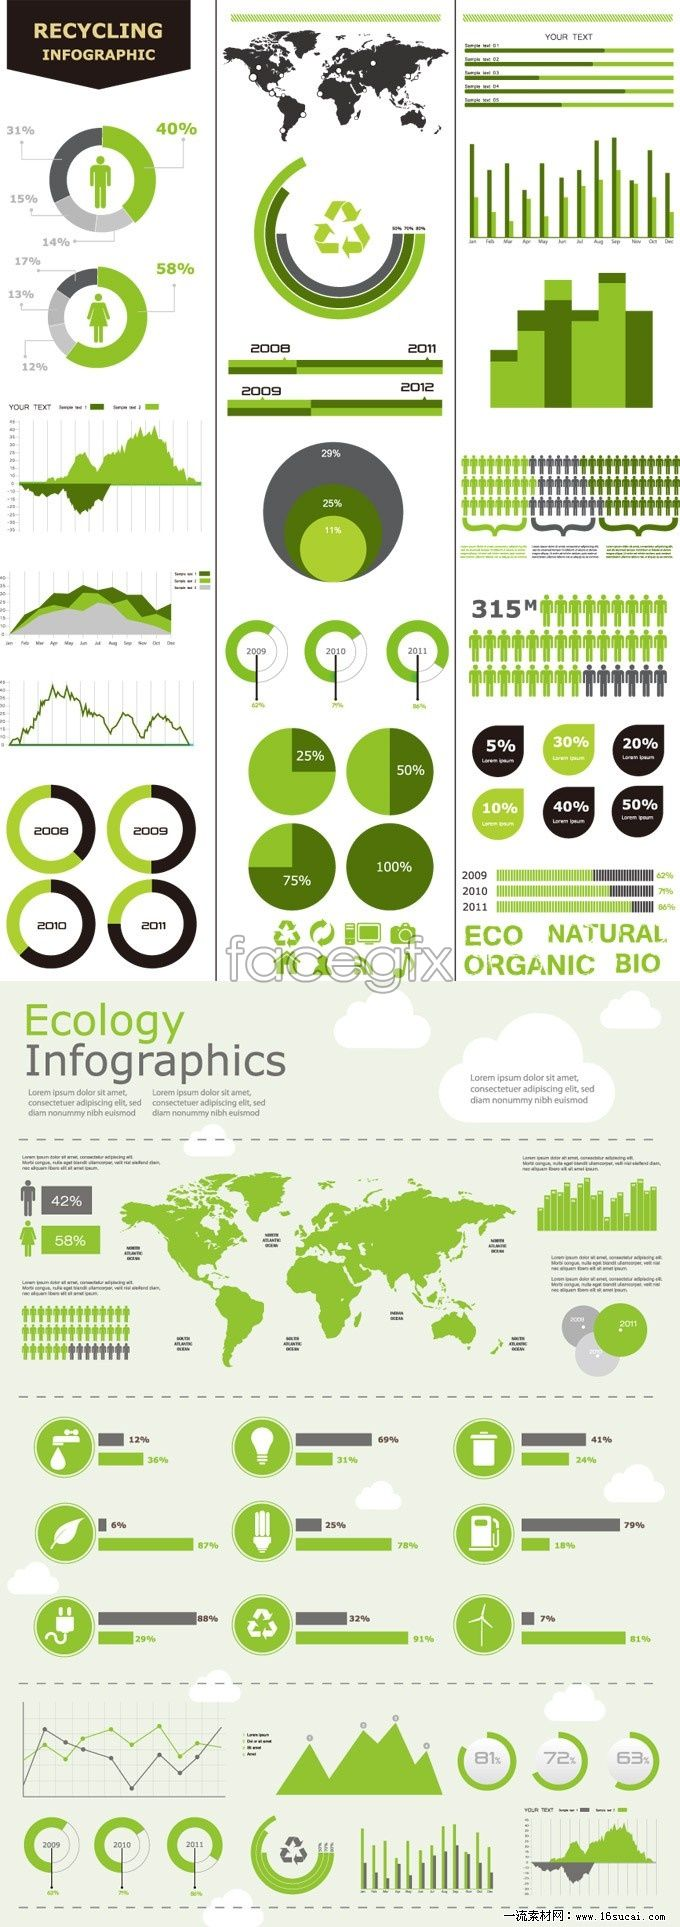 Green infographic. ecology. very clean colours that keep the theme of the info graphic to its nature of eco. nice clean images which make it stand out!